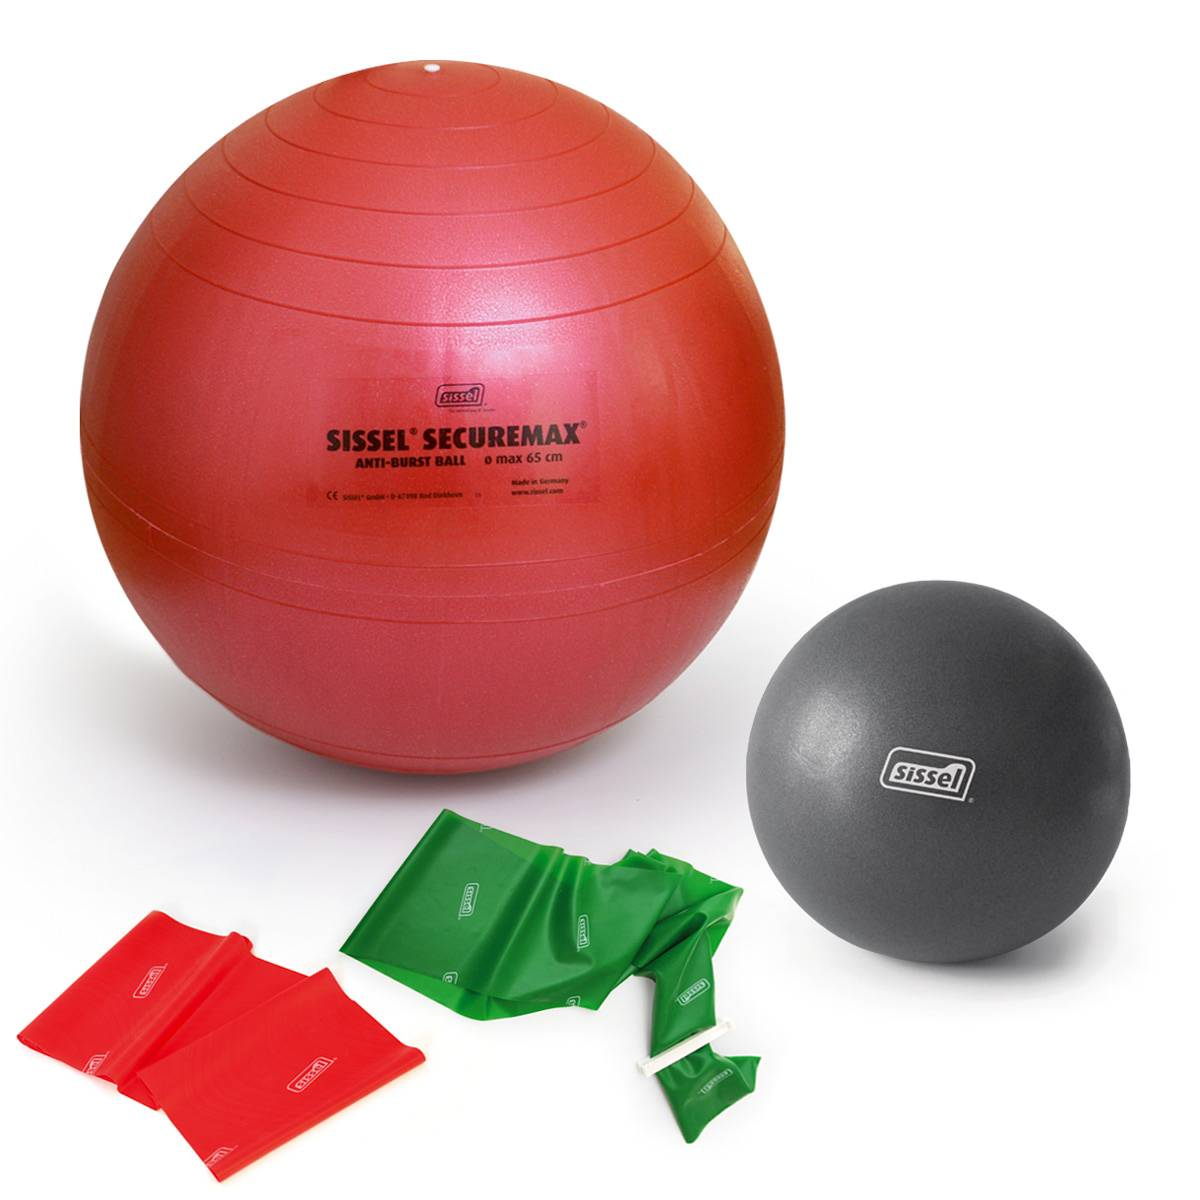 sissel kit pilates con giorgia 3: soft ball - fitball - fitband